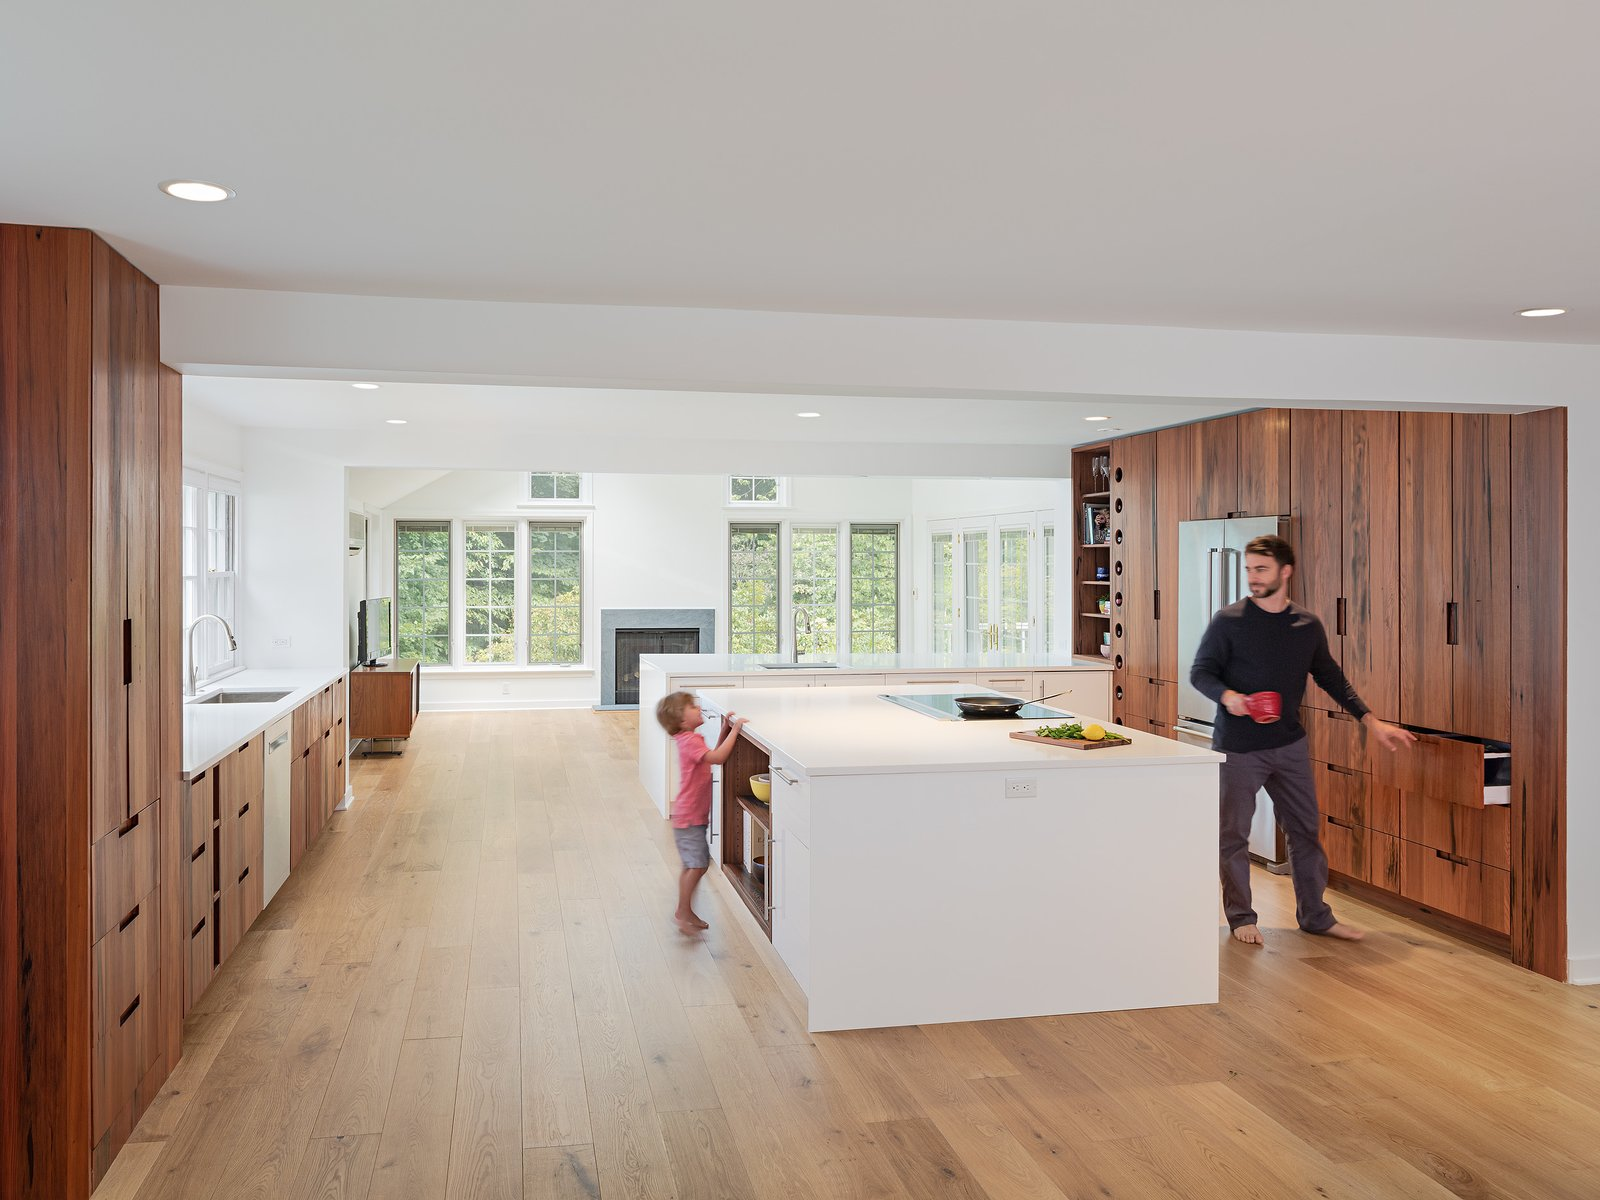 Kitchen, Engineered Quartz Counter, White Cabinet, Wood Cabinet, Recessed Lighting, Undermount Sink, and Light Hardwood Floor Custom cabinetry using Reclaimed American redwood with integrated pulls.  Wayne Residence